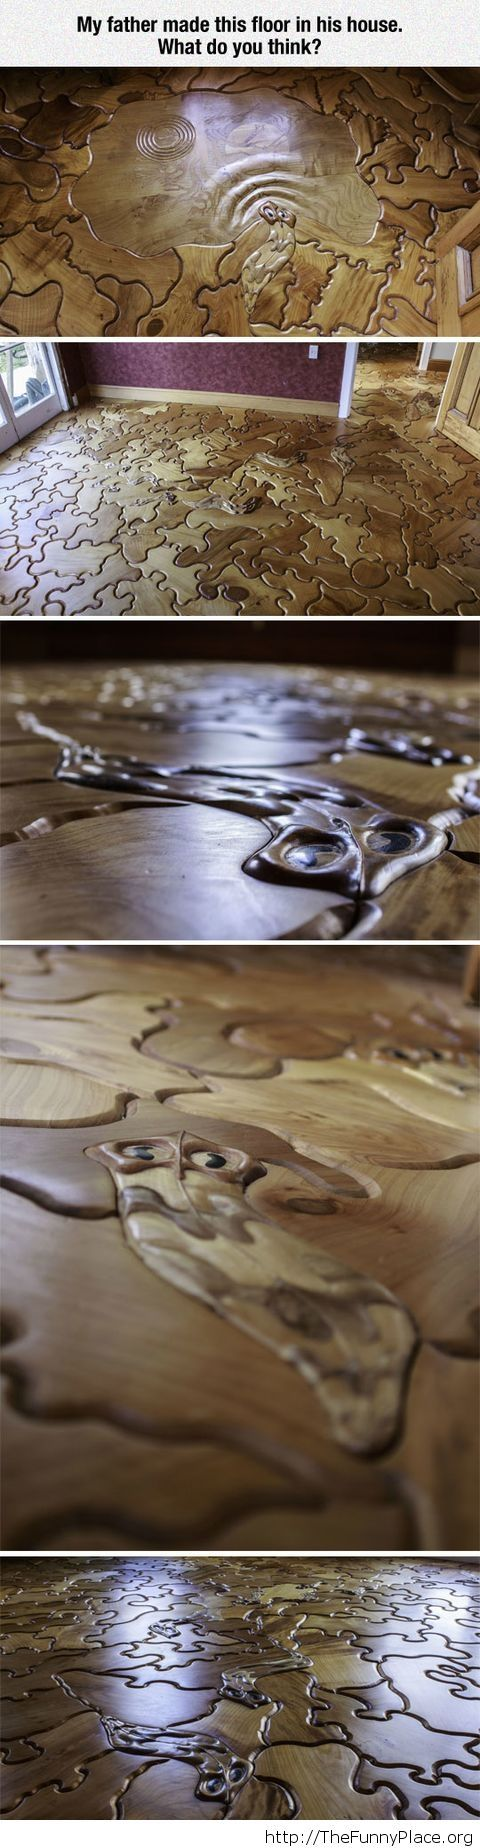 Awesome floor puzzle